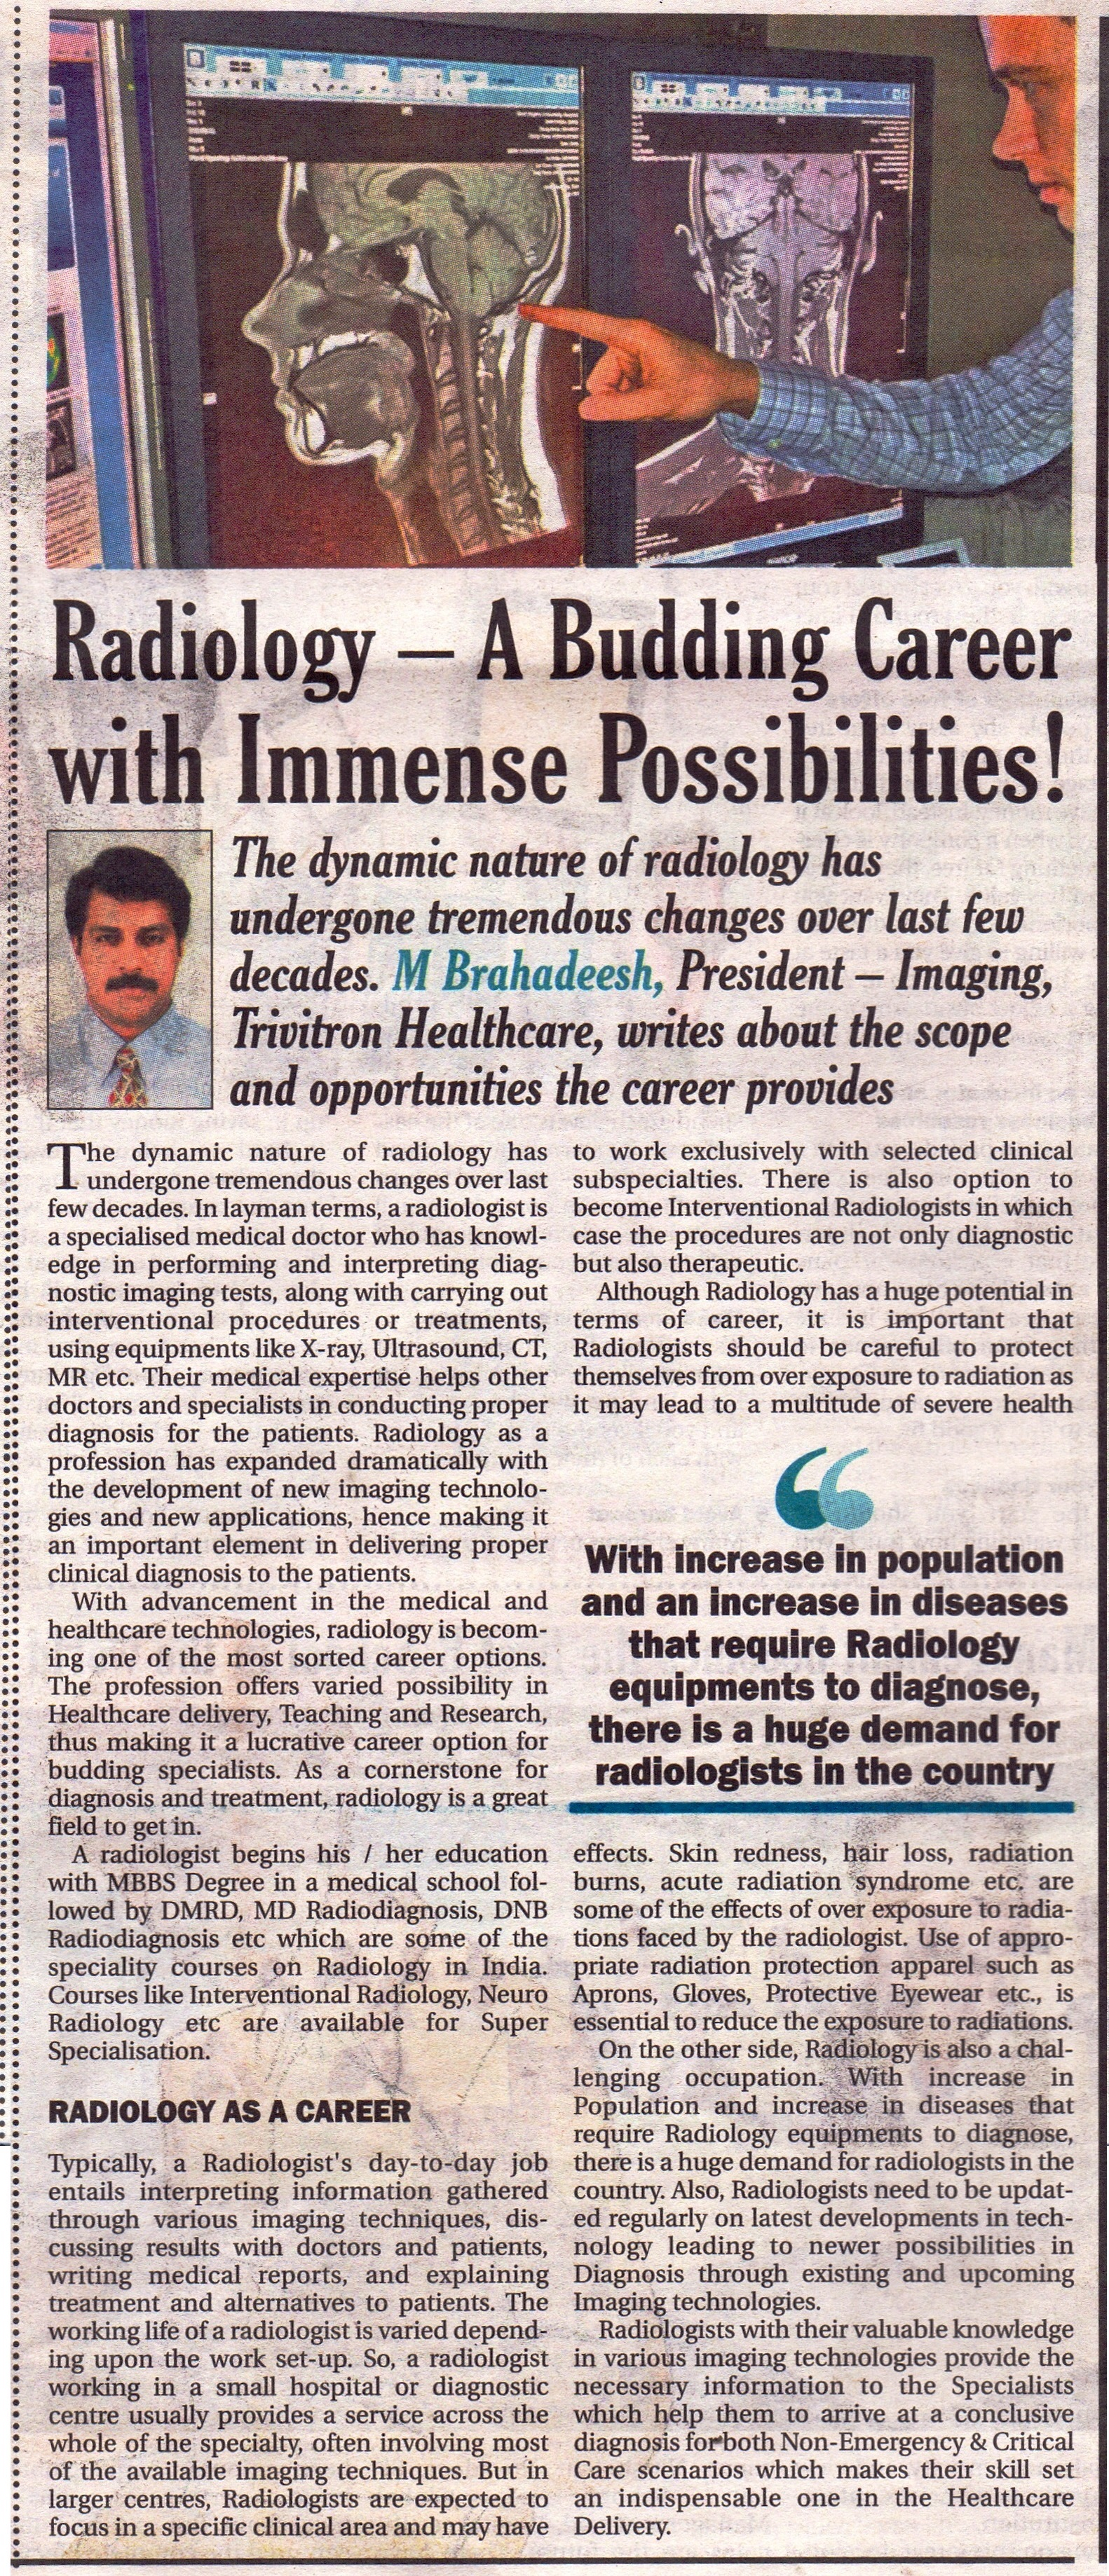 radiology---a-budding-career-with-immense-possibilities